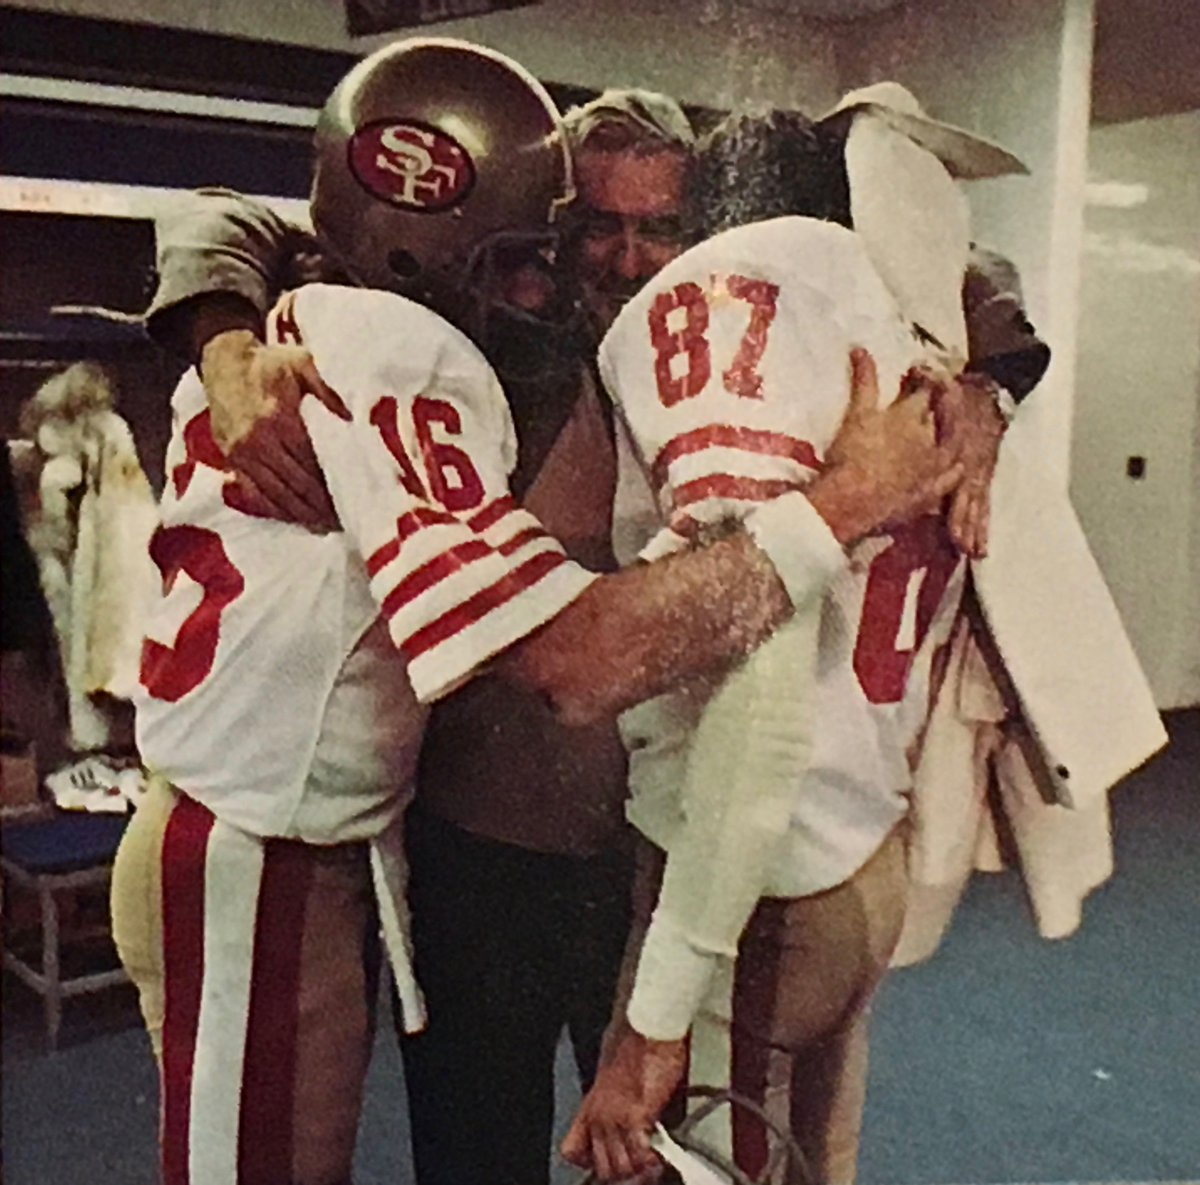 Ken Gelman On Twitter A Winning Moment Dwight Clark Embraces Joe Montana And Joe S Dad In The Silverdome Locker Room After The 49ers First Super Bowl Championship Victory In Super Bowl Xvi See more of ken & joes honda kawi ktm on facebook. dwight clark embraces joe montana and